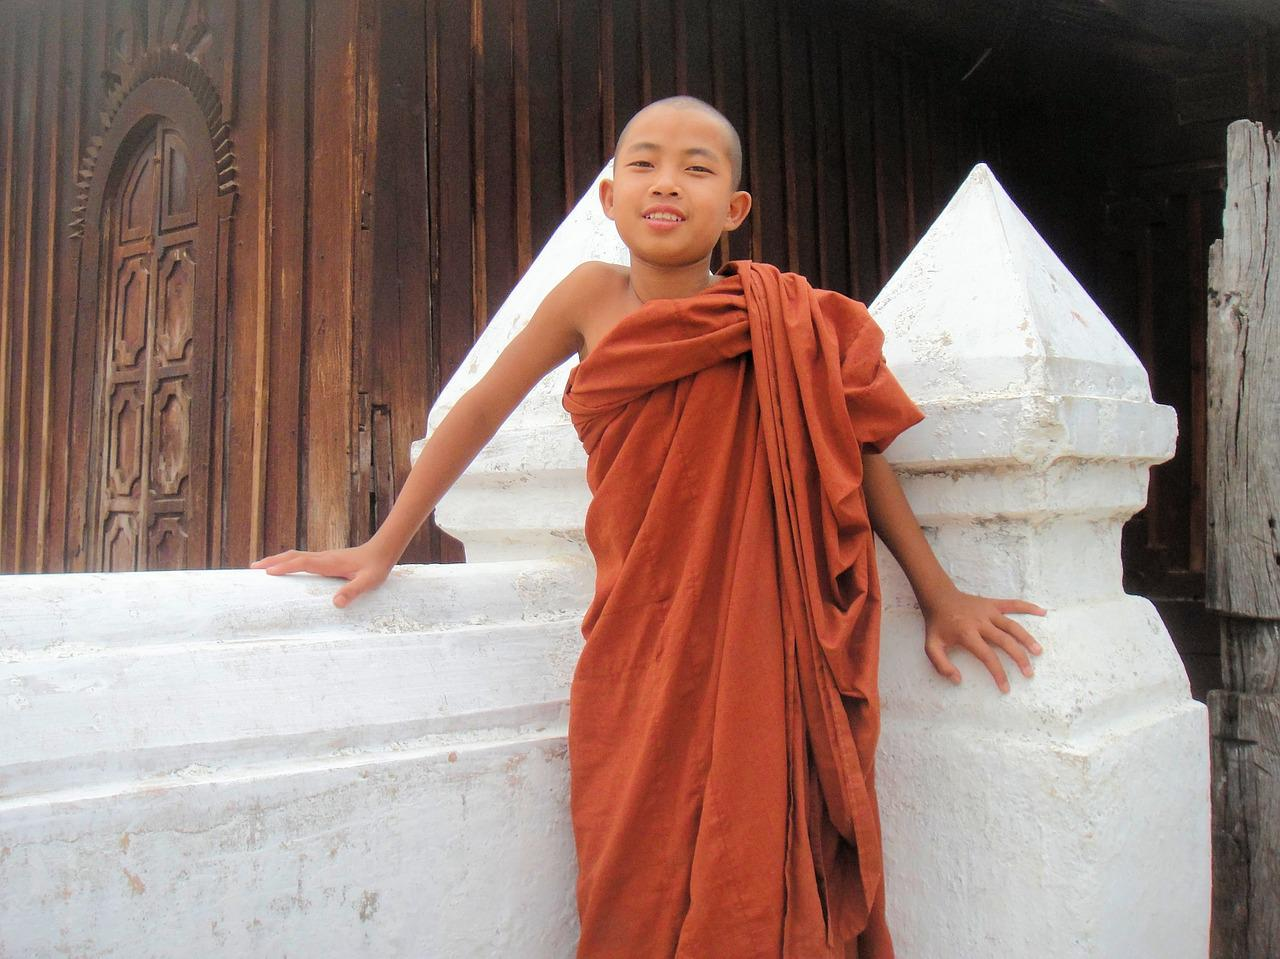 vsters buddhist personals Find meetups about buddhist and meet people in your local community who share your interests.